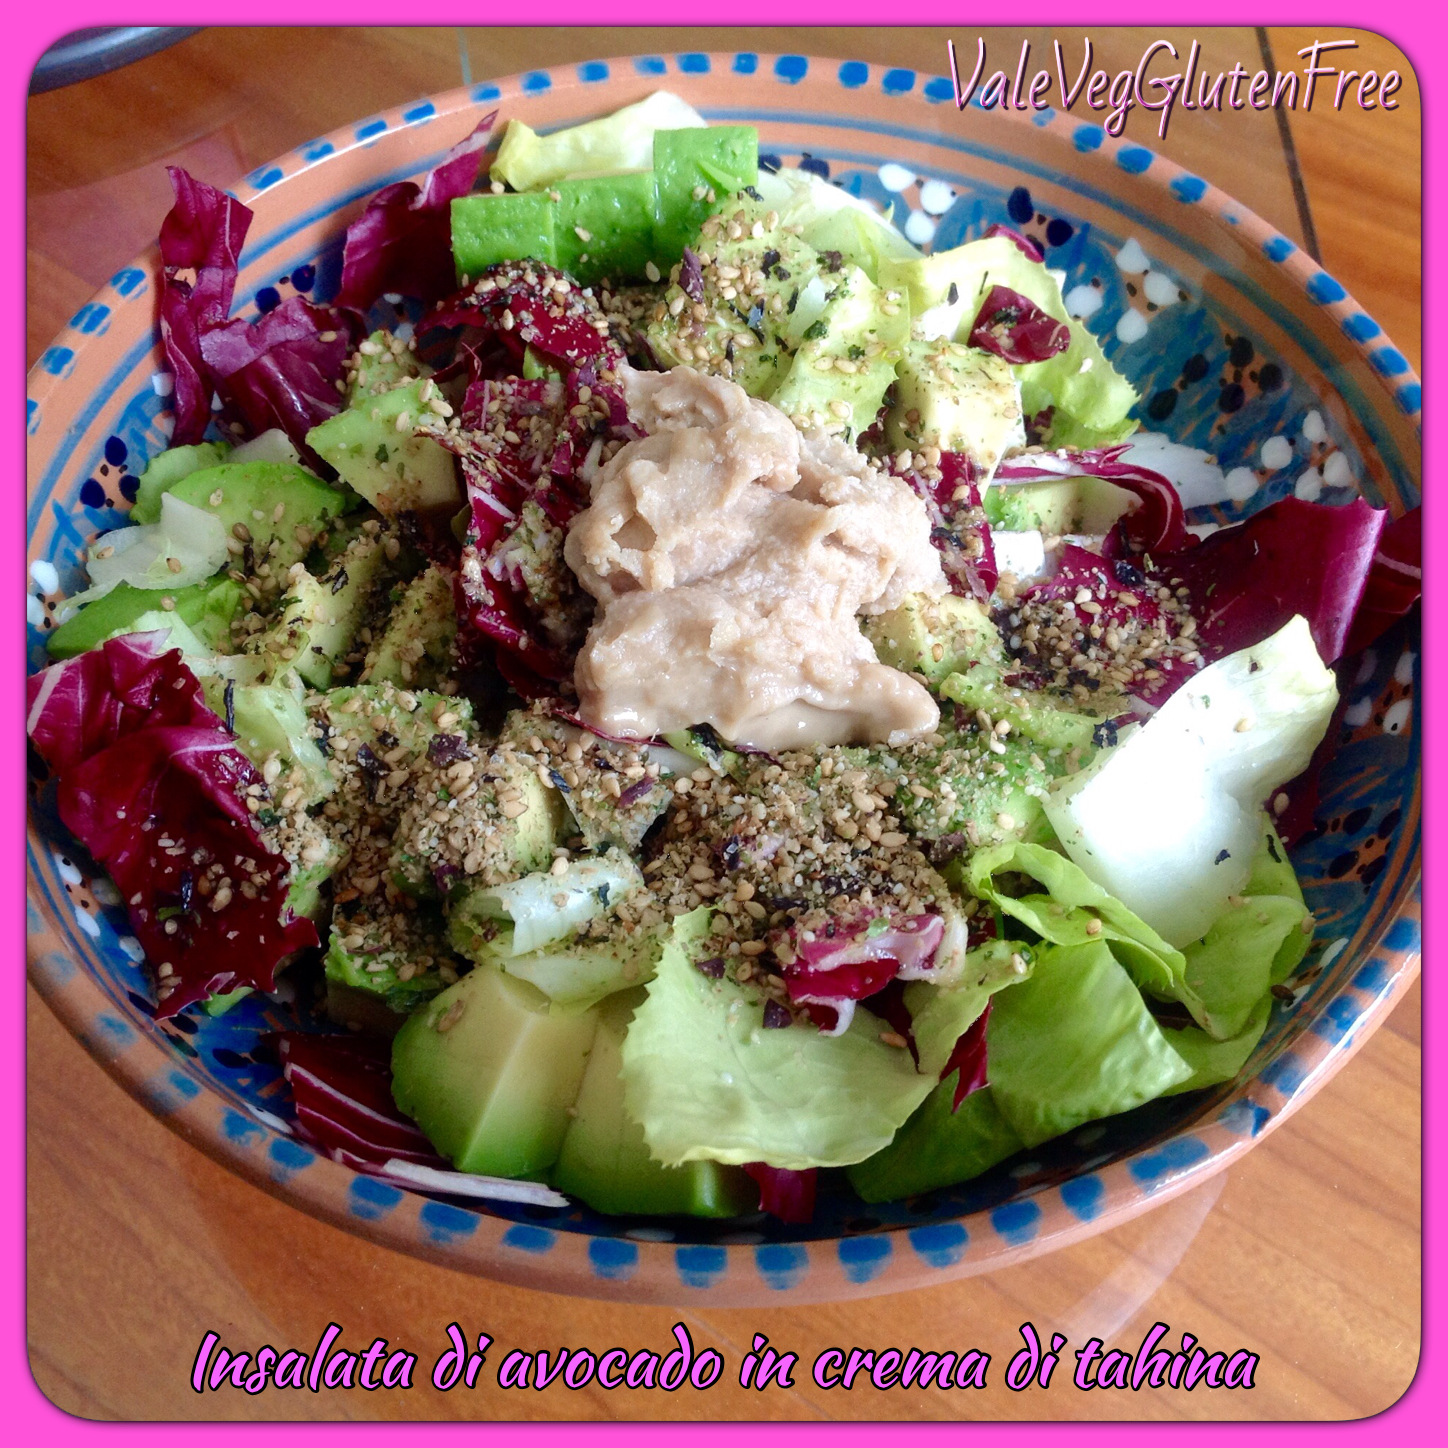 Avocado salad with tahini mayo / Insalata di avocado con maionese di tahina